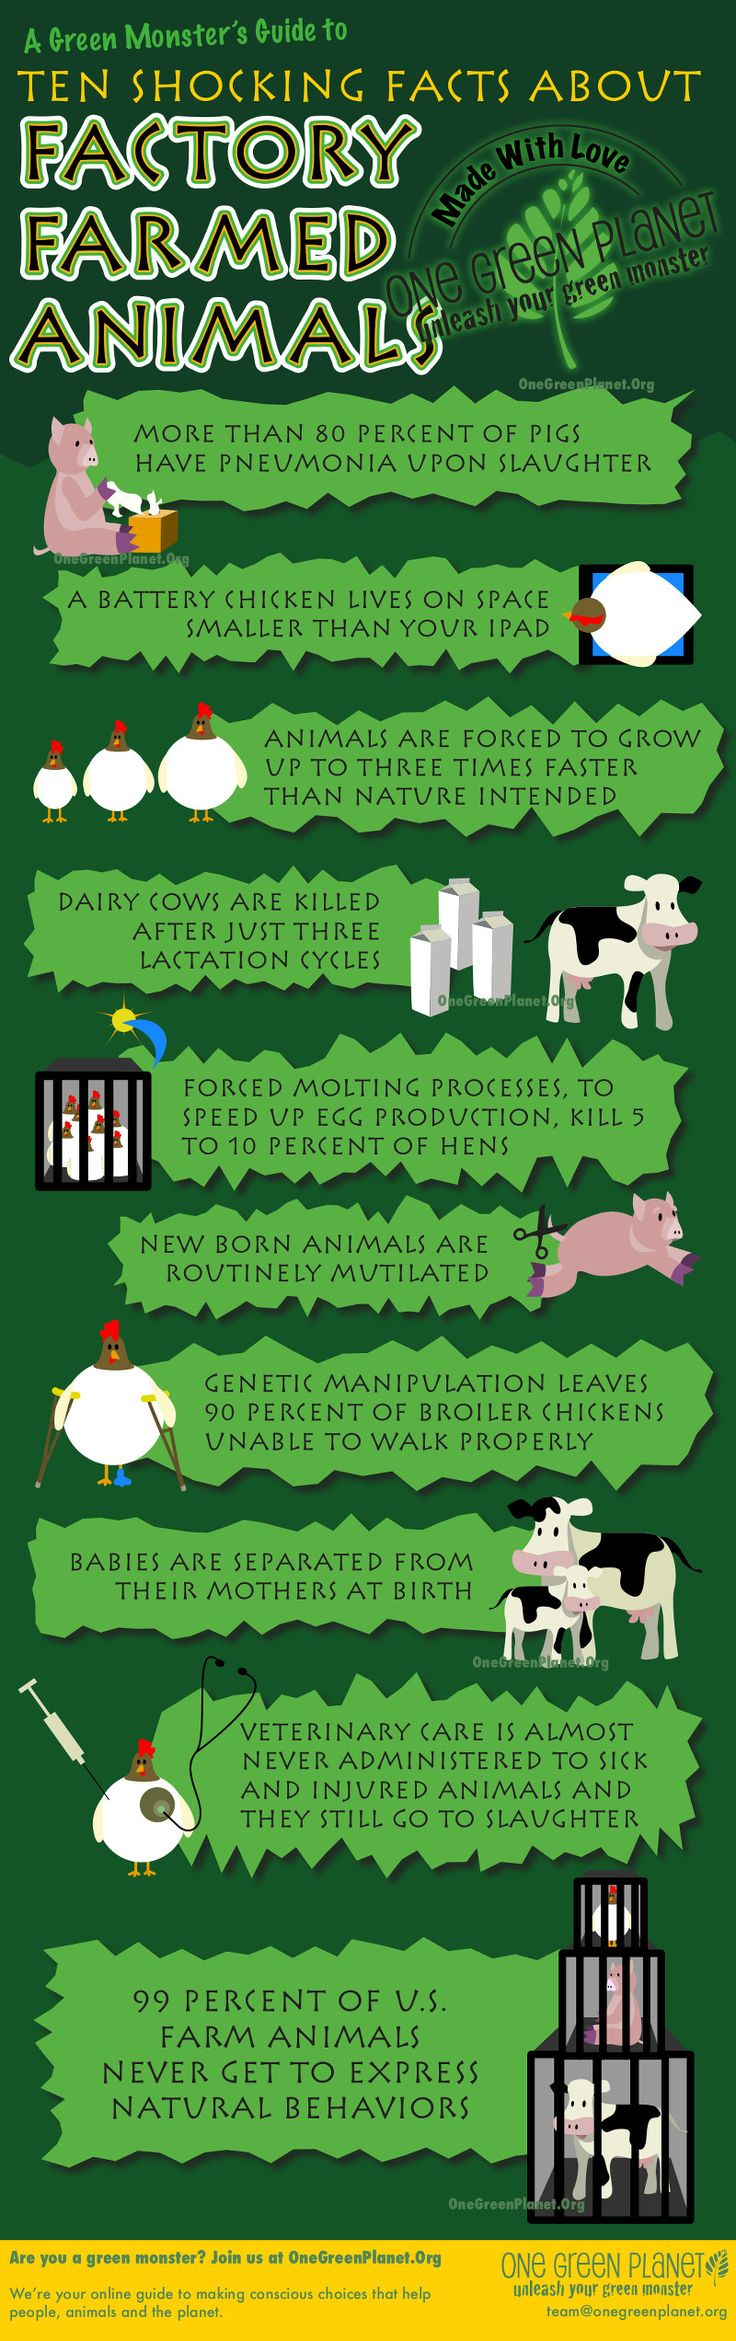 Shocking Facts About Factory Farmed Animals [INFOGRAPHIC].  Profit over living beings.